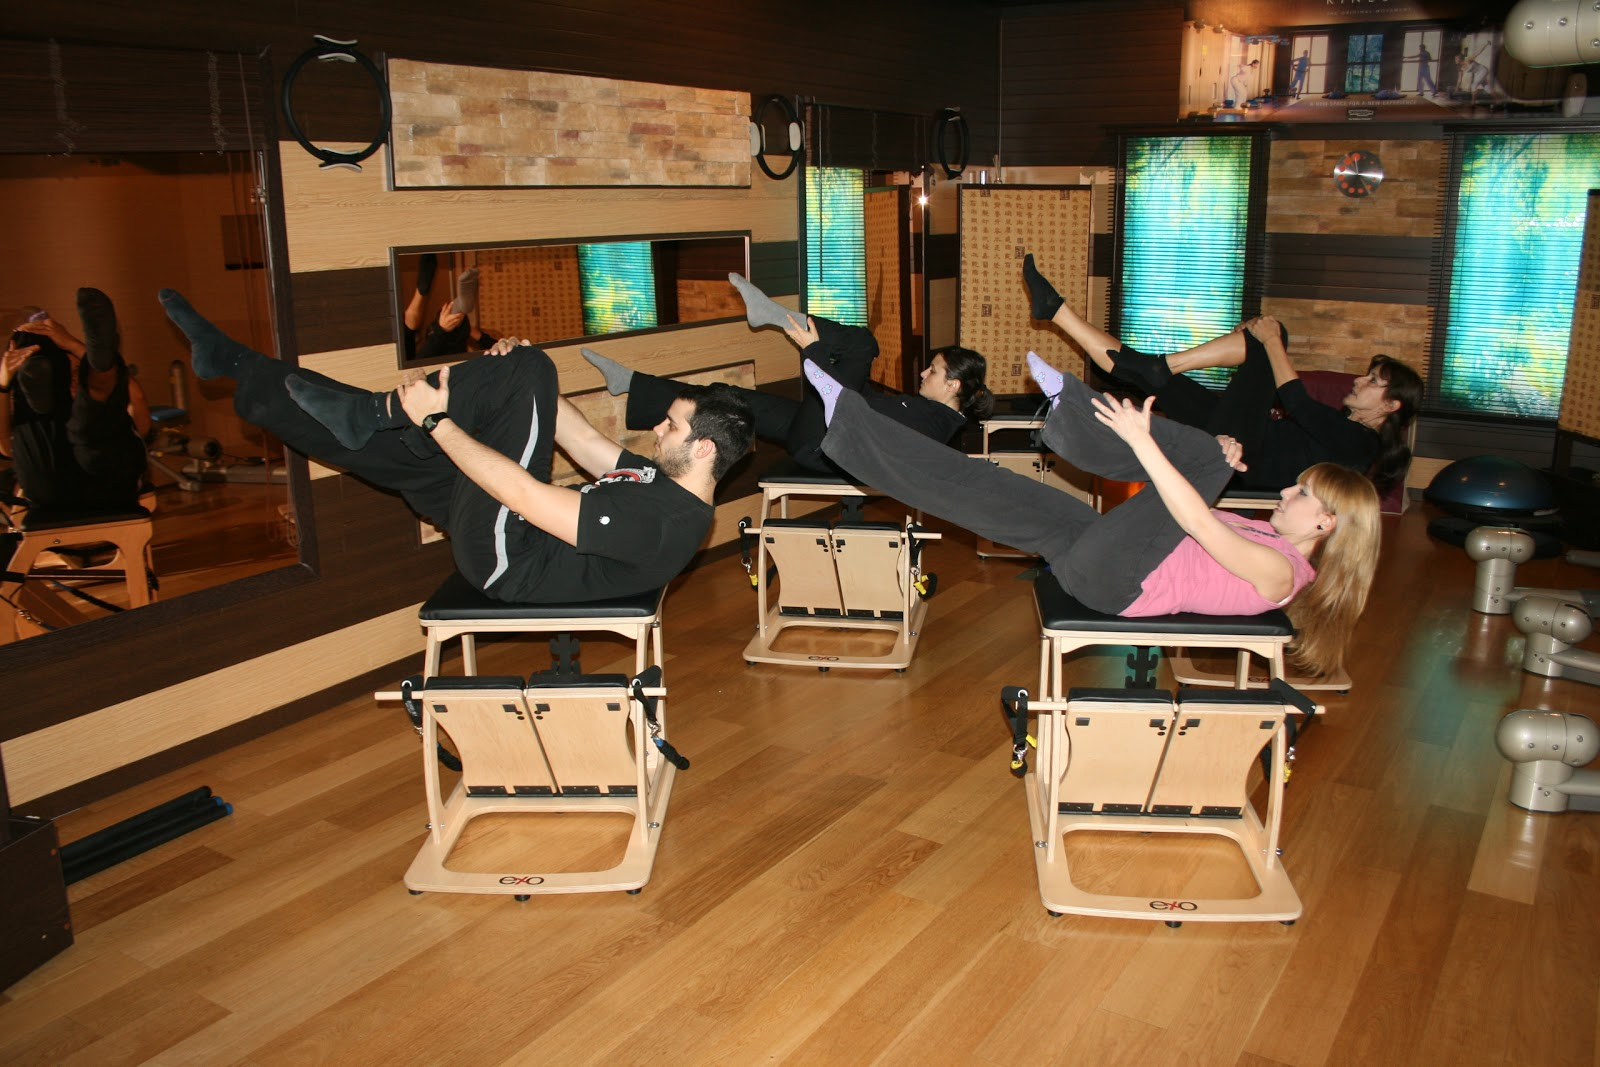 Study Pilates and Personal Training Espacio62 - photo